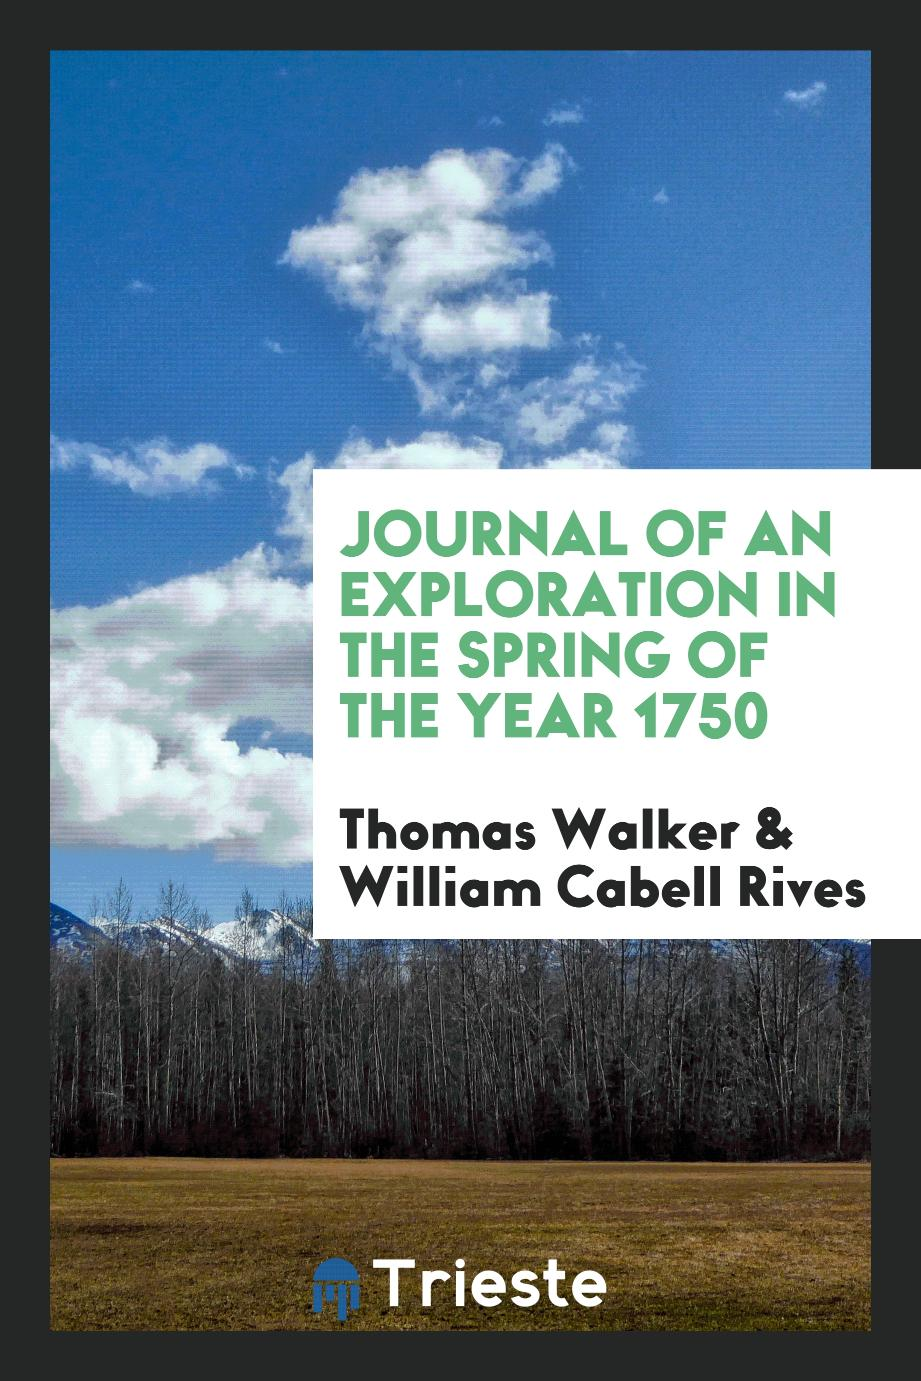 Journal of an Exploration in the Spring of the Year 1750